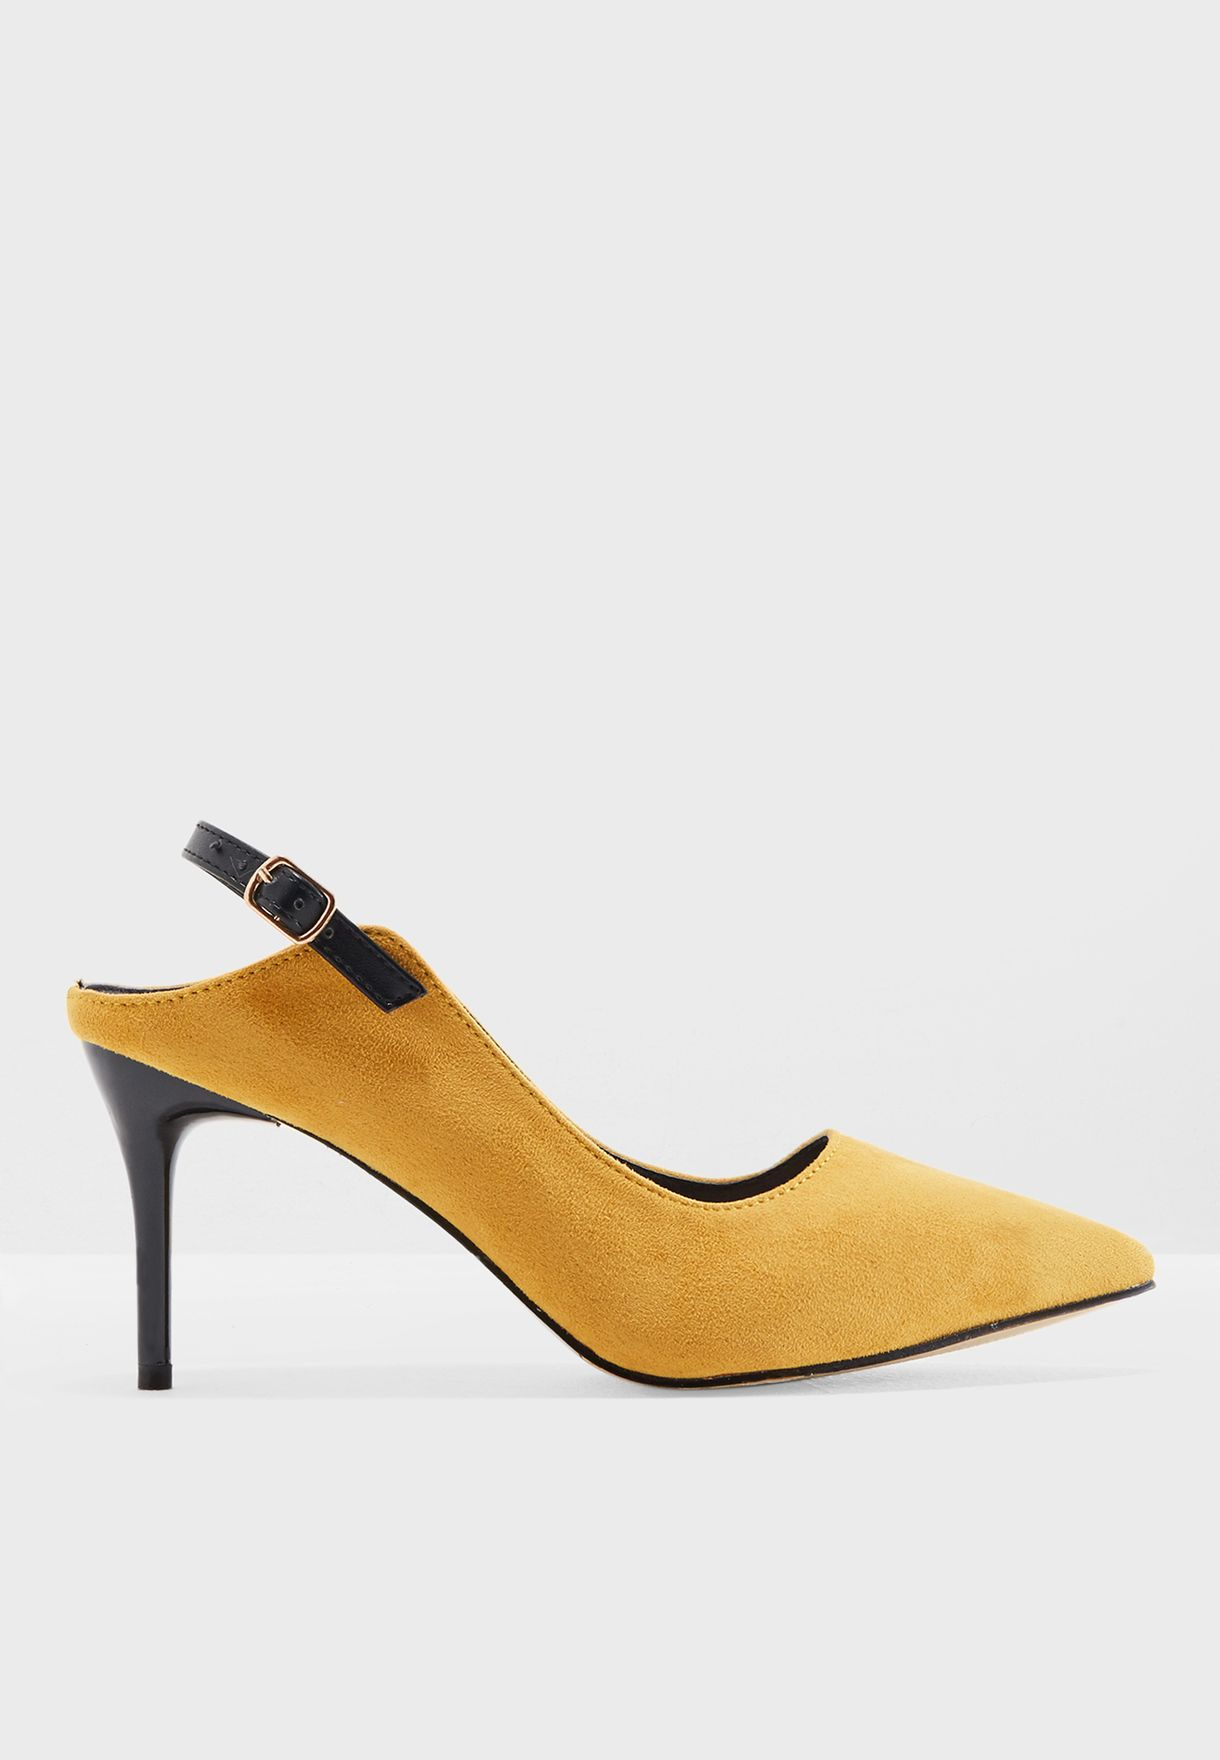 Cut Out Heel Pumps